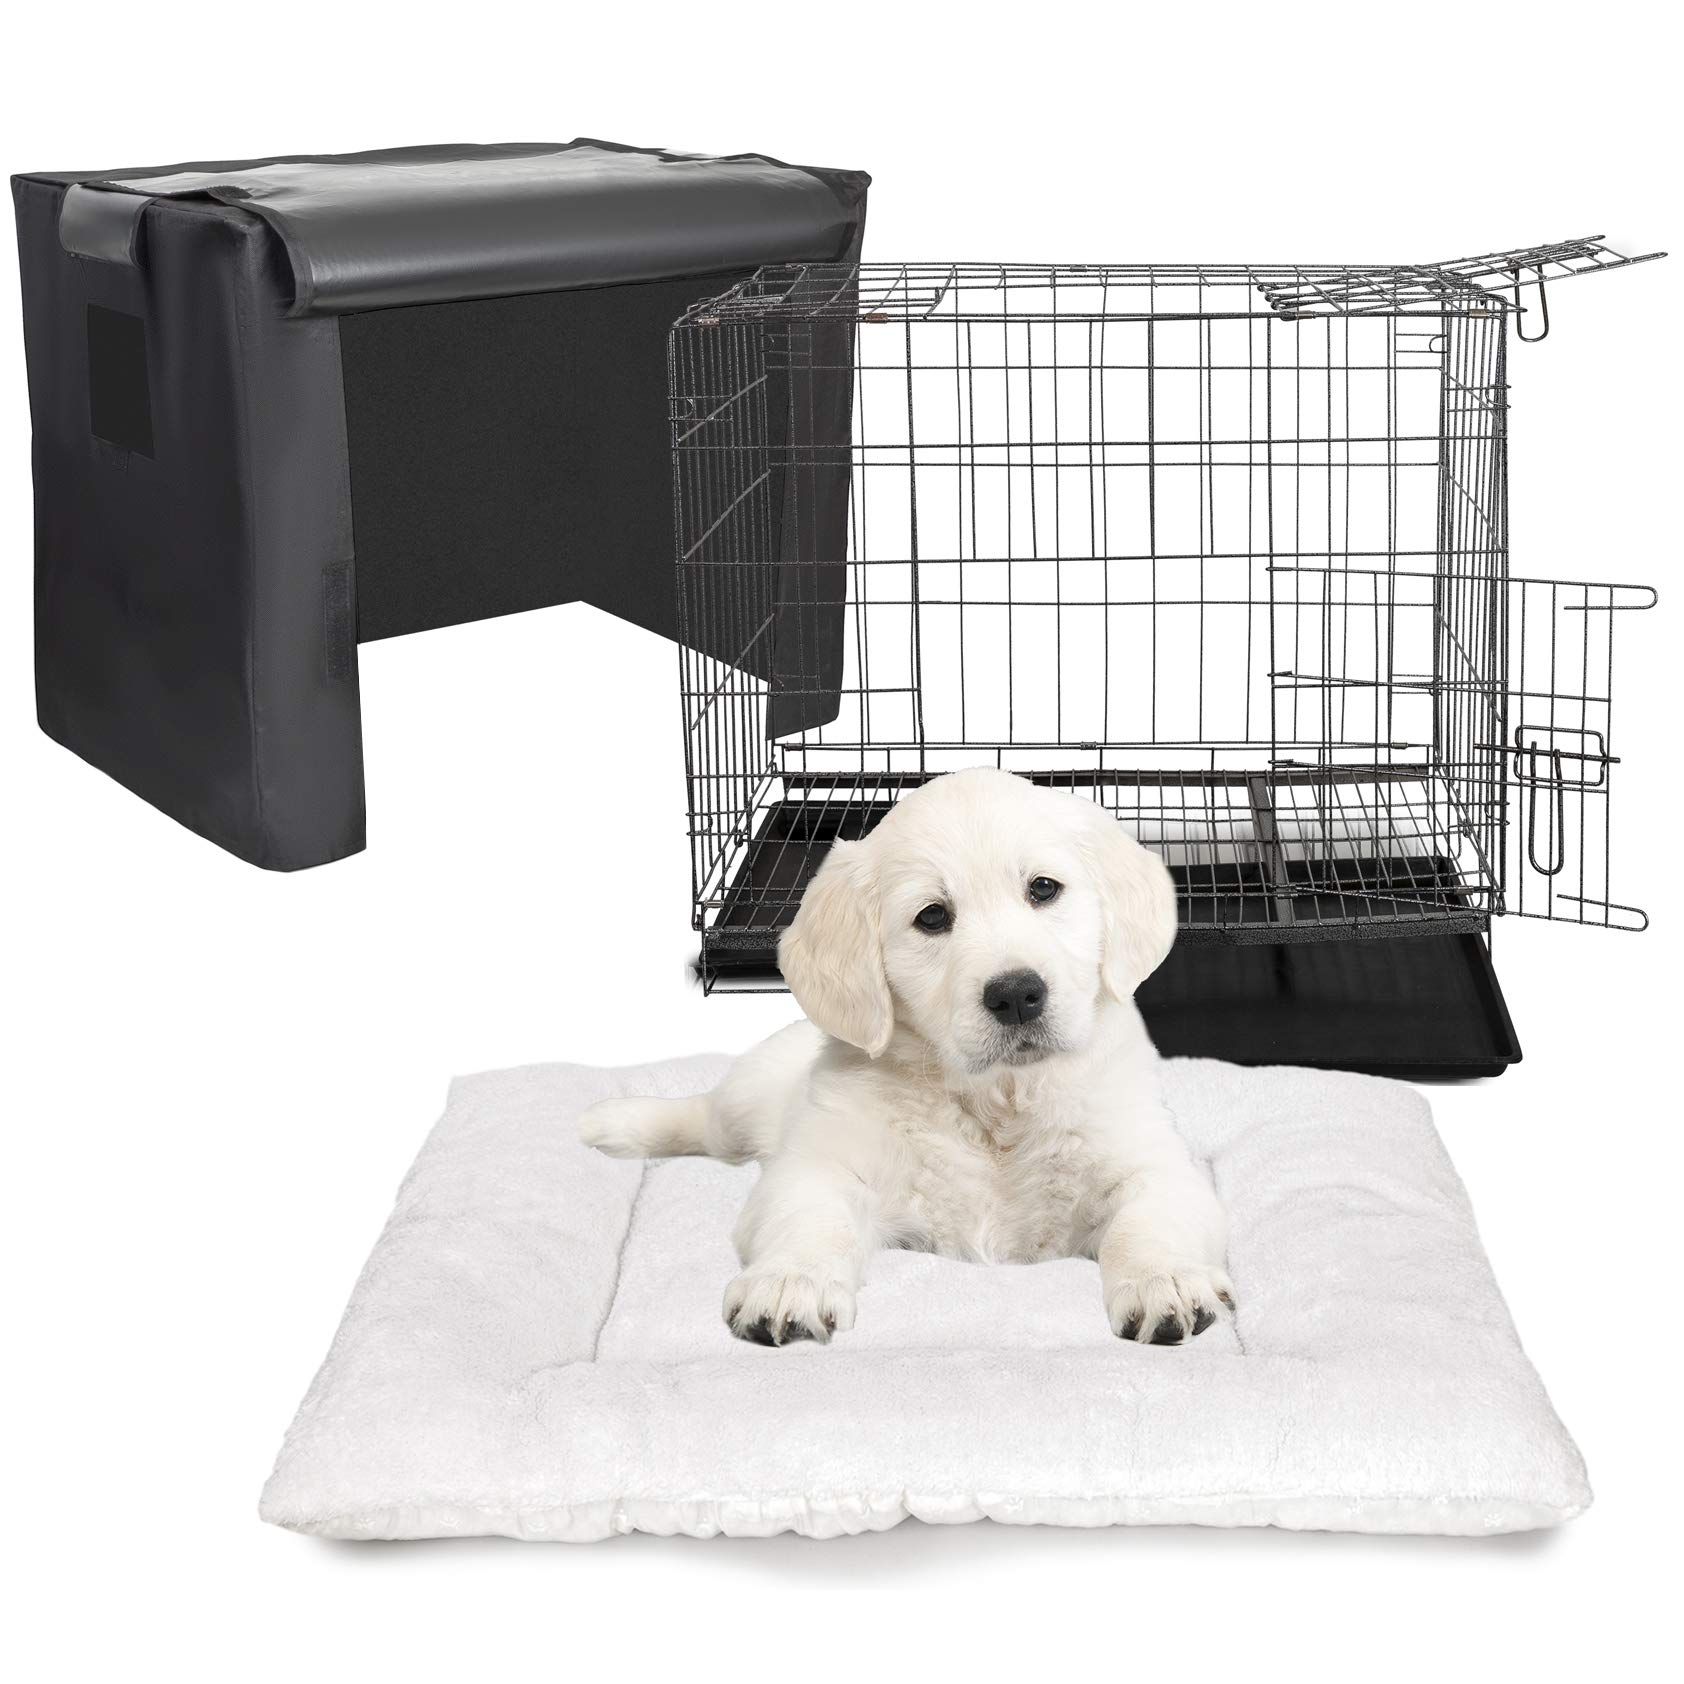 Deco Pet Parent Kennel Set with Single Door Folding Metal Dog Cat Training Crate Including Indoor/Outdoor Cover & Quilted Fleece Cozy Bed Pad by Deco Gear